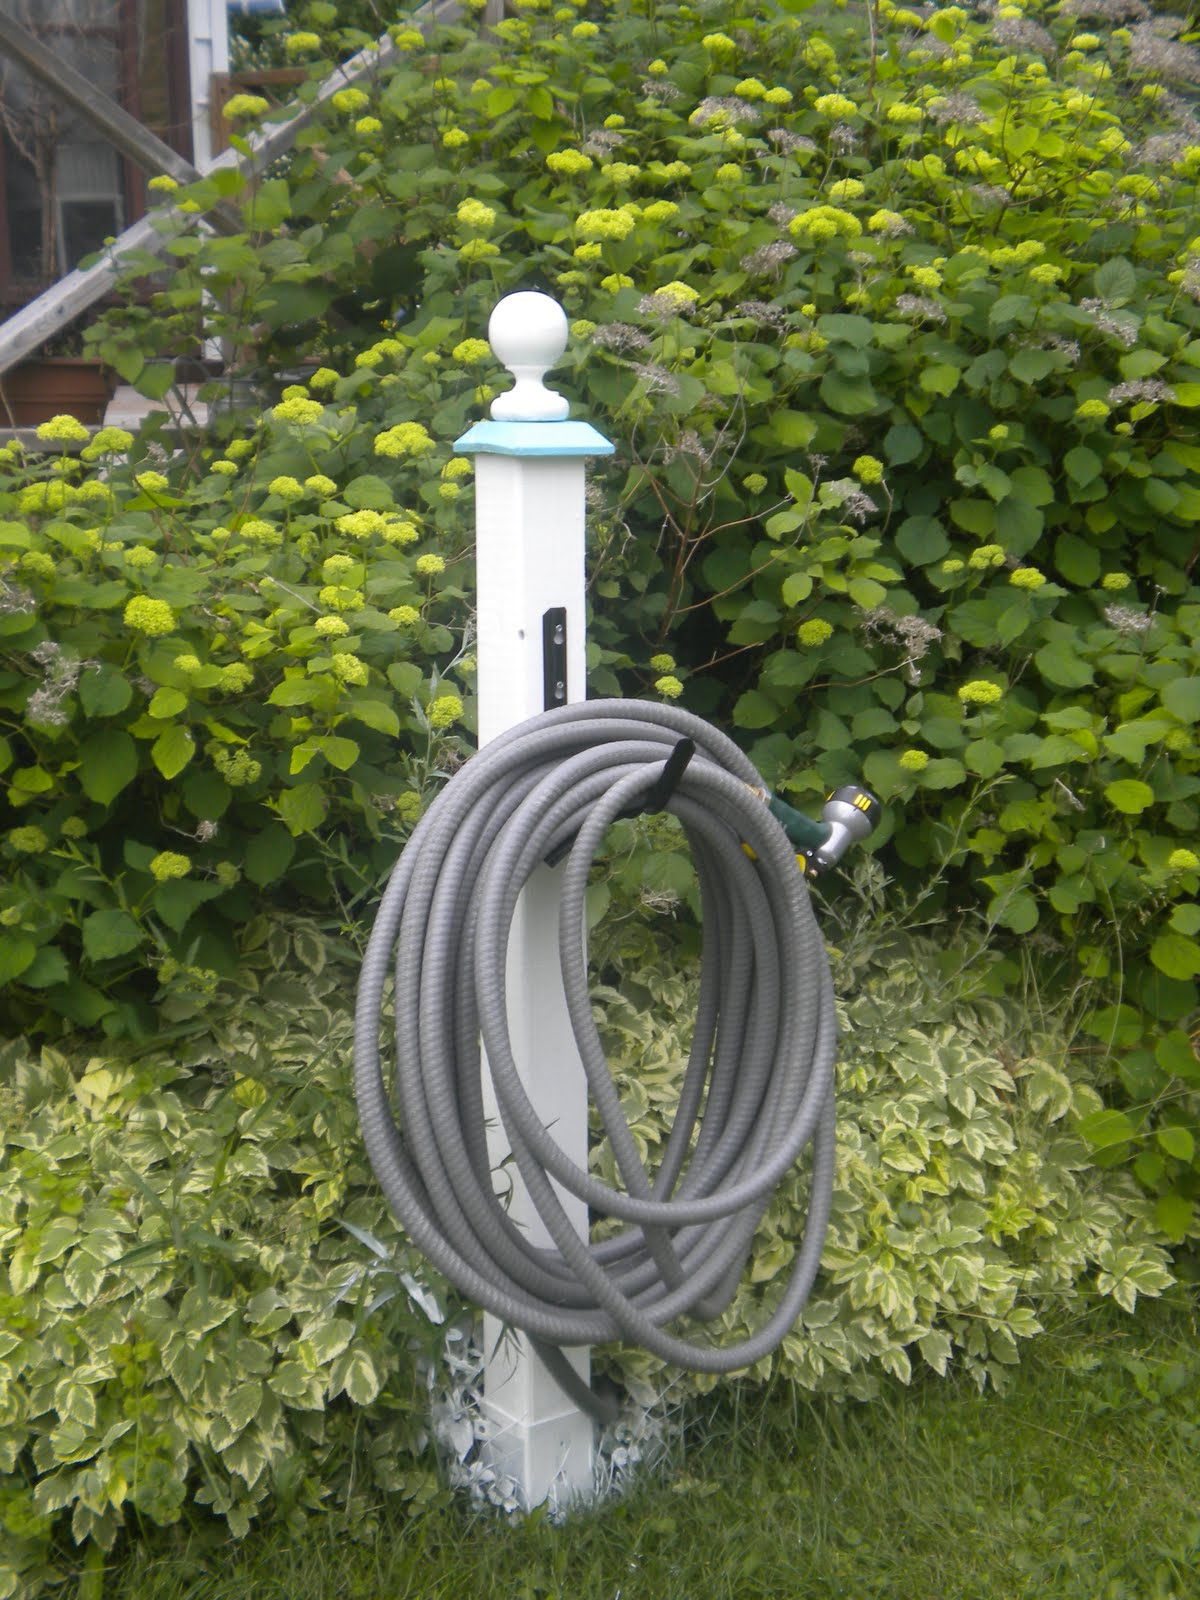 THISTLE HOUSE: outdoor number sign and hose holder